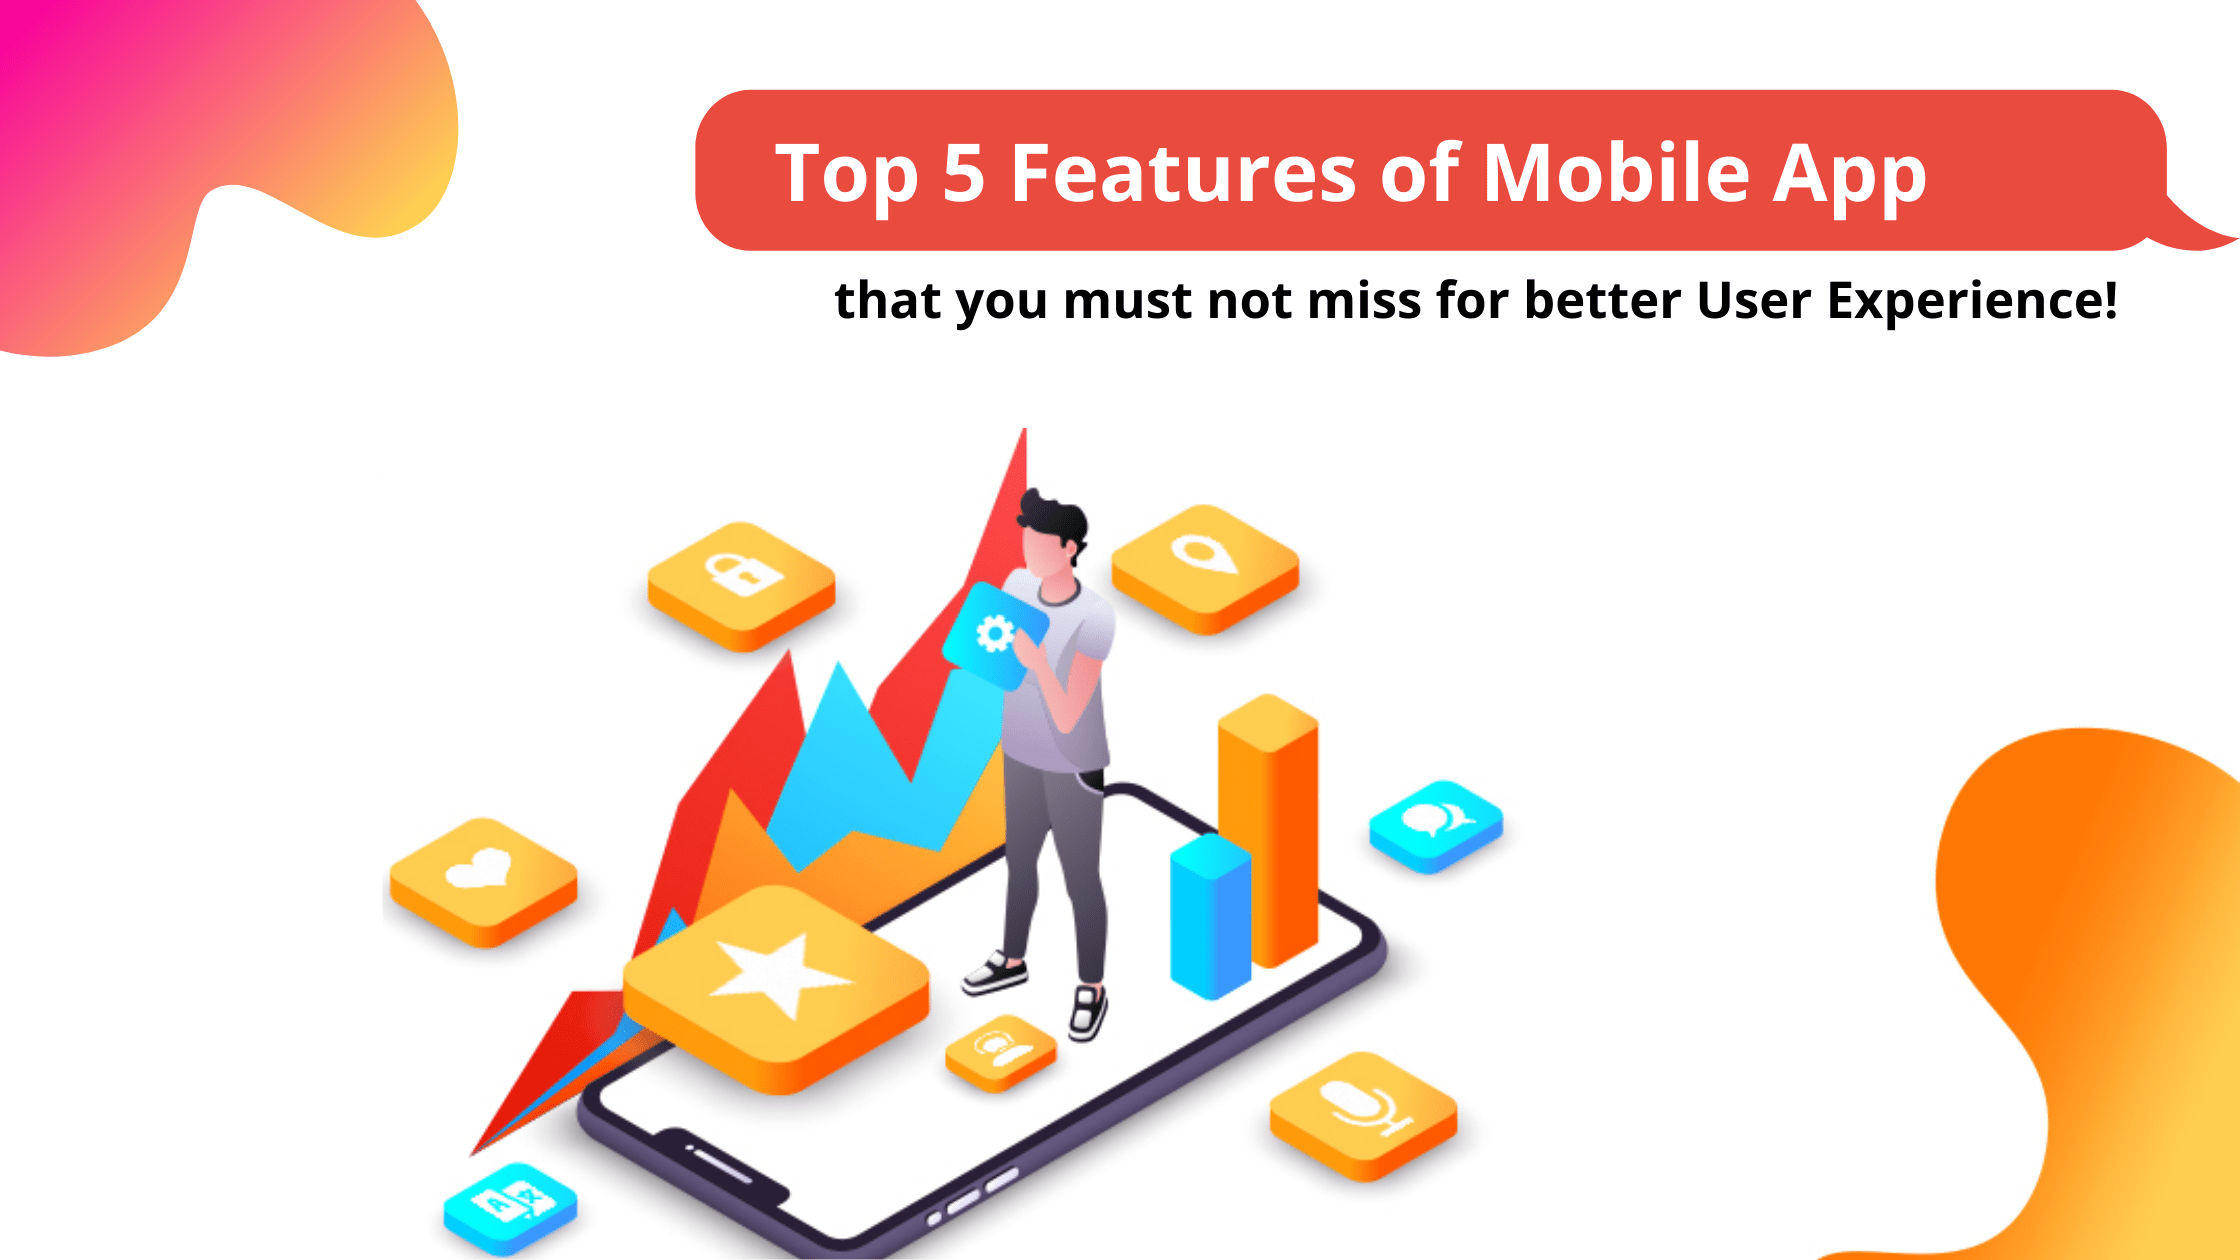 Top 5 Mobile App Features that you must not miss for better User Experience